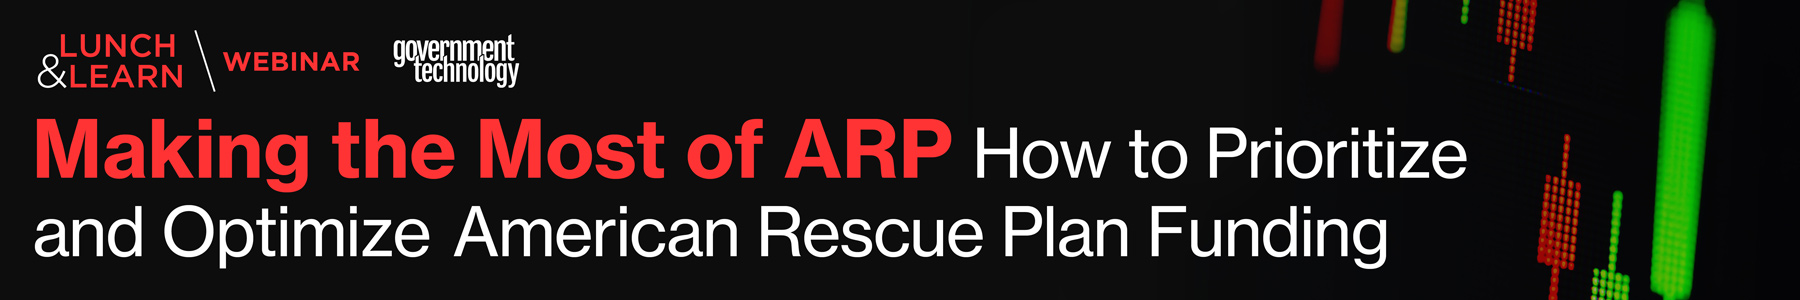 Making the Most of ARP: How to Prioritize and Optimize American Rescue Plan Funding